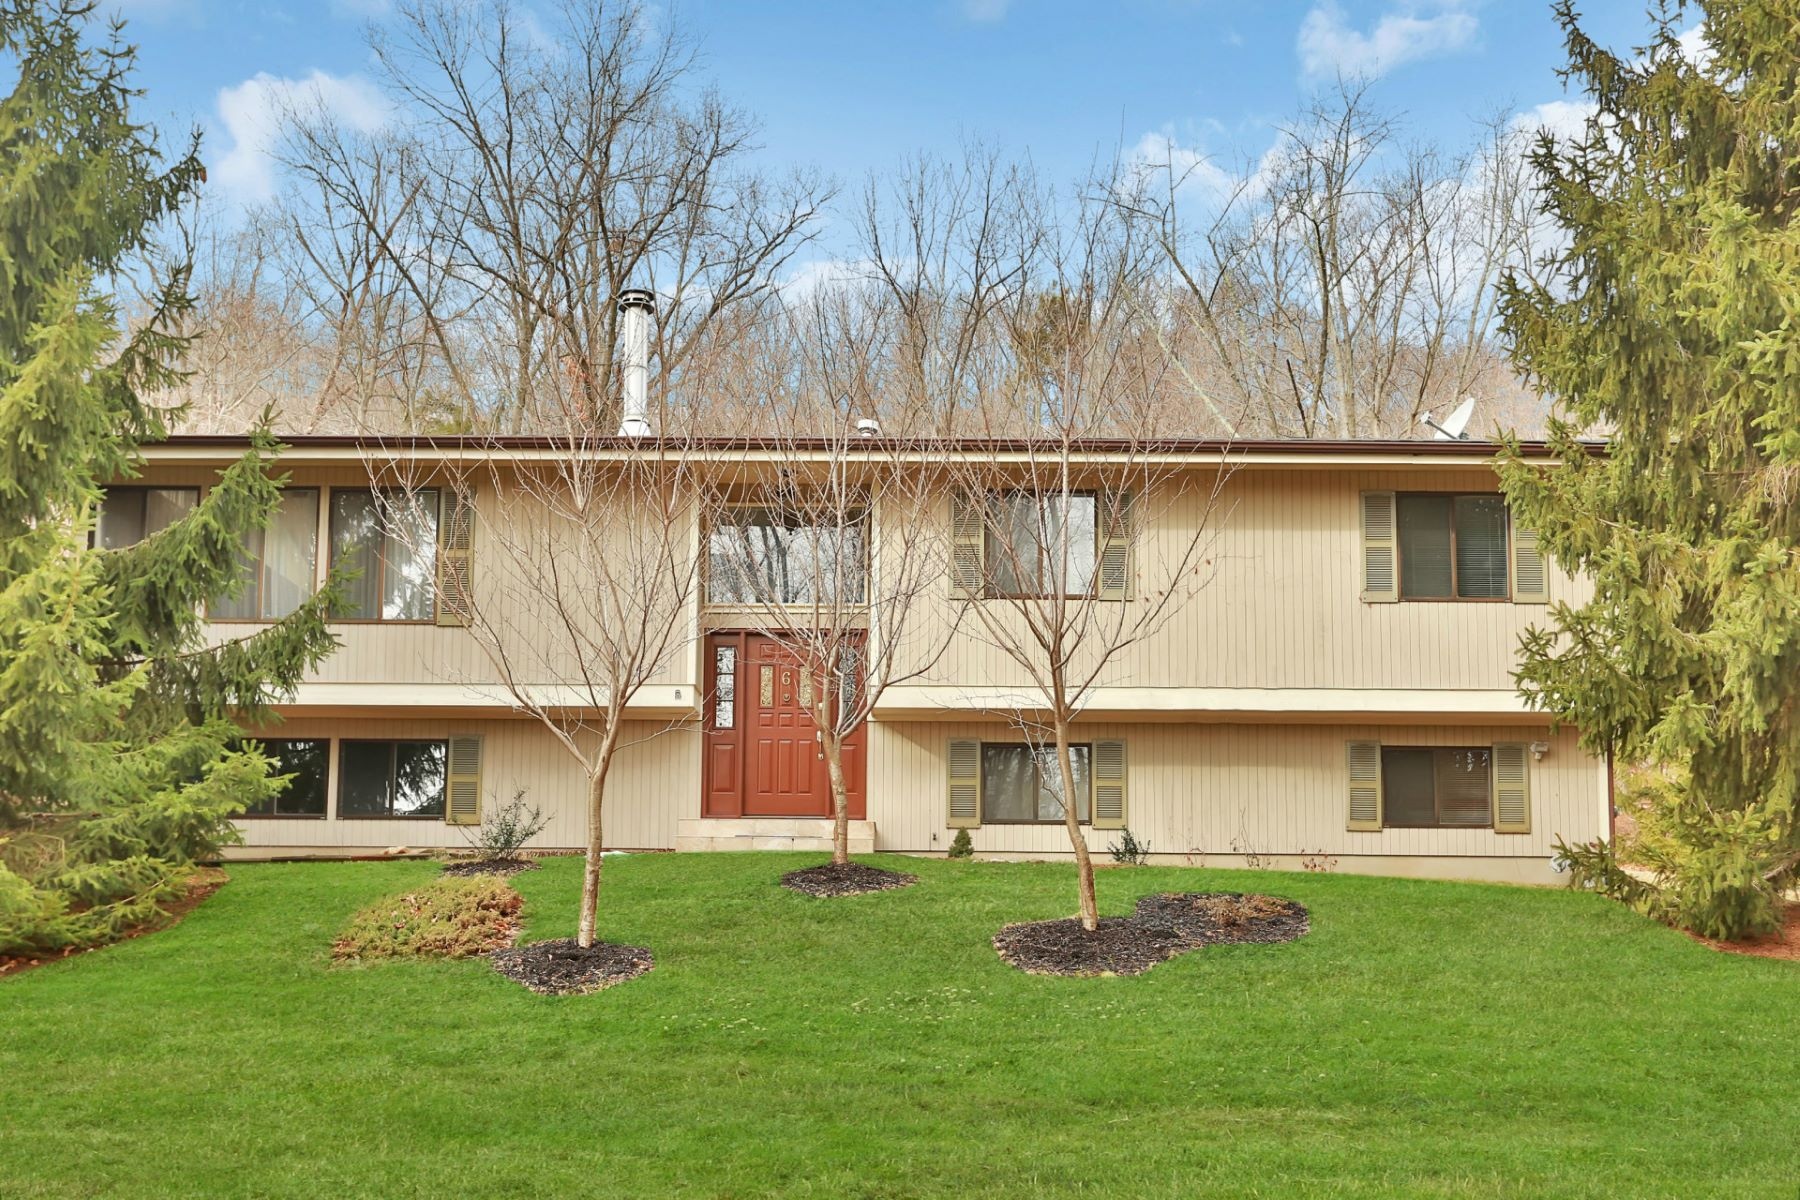 Single Family Home for Sale at Turn key and move in! 6 Colline Drive Montebello, New York, 10901 United States